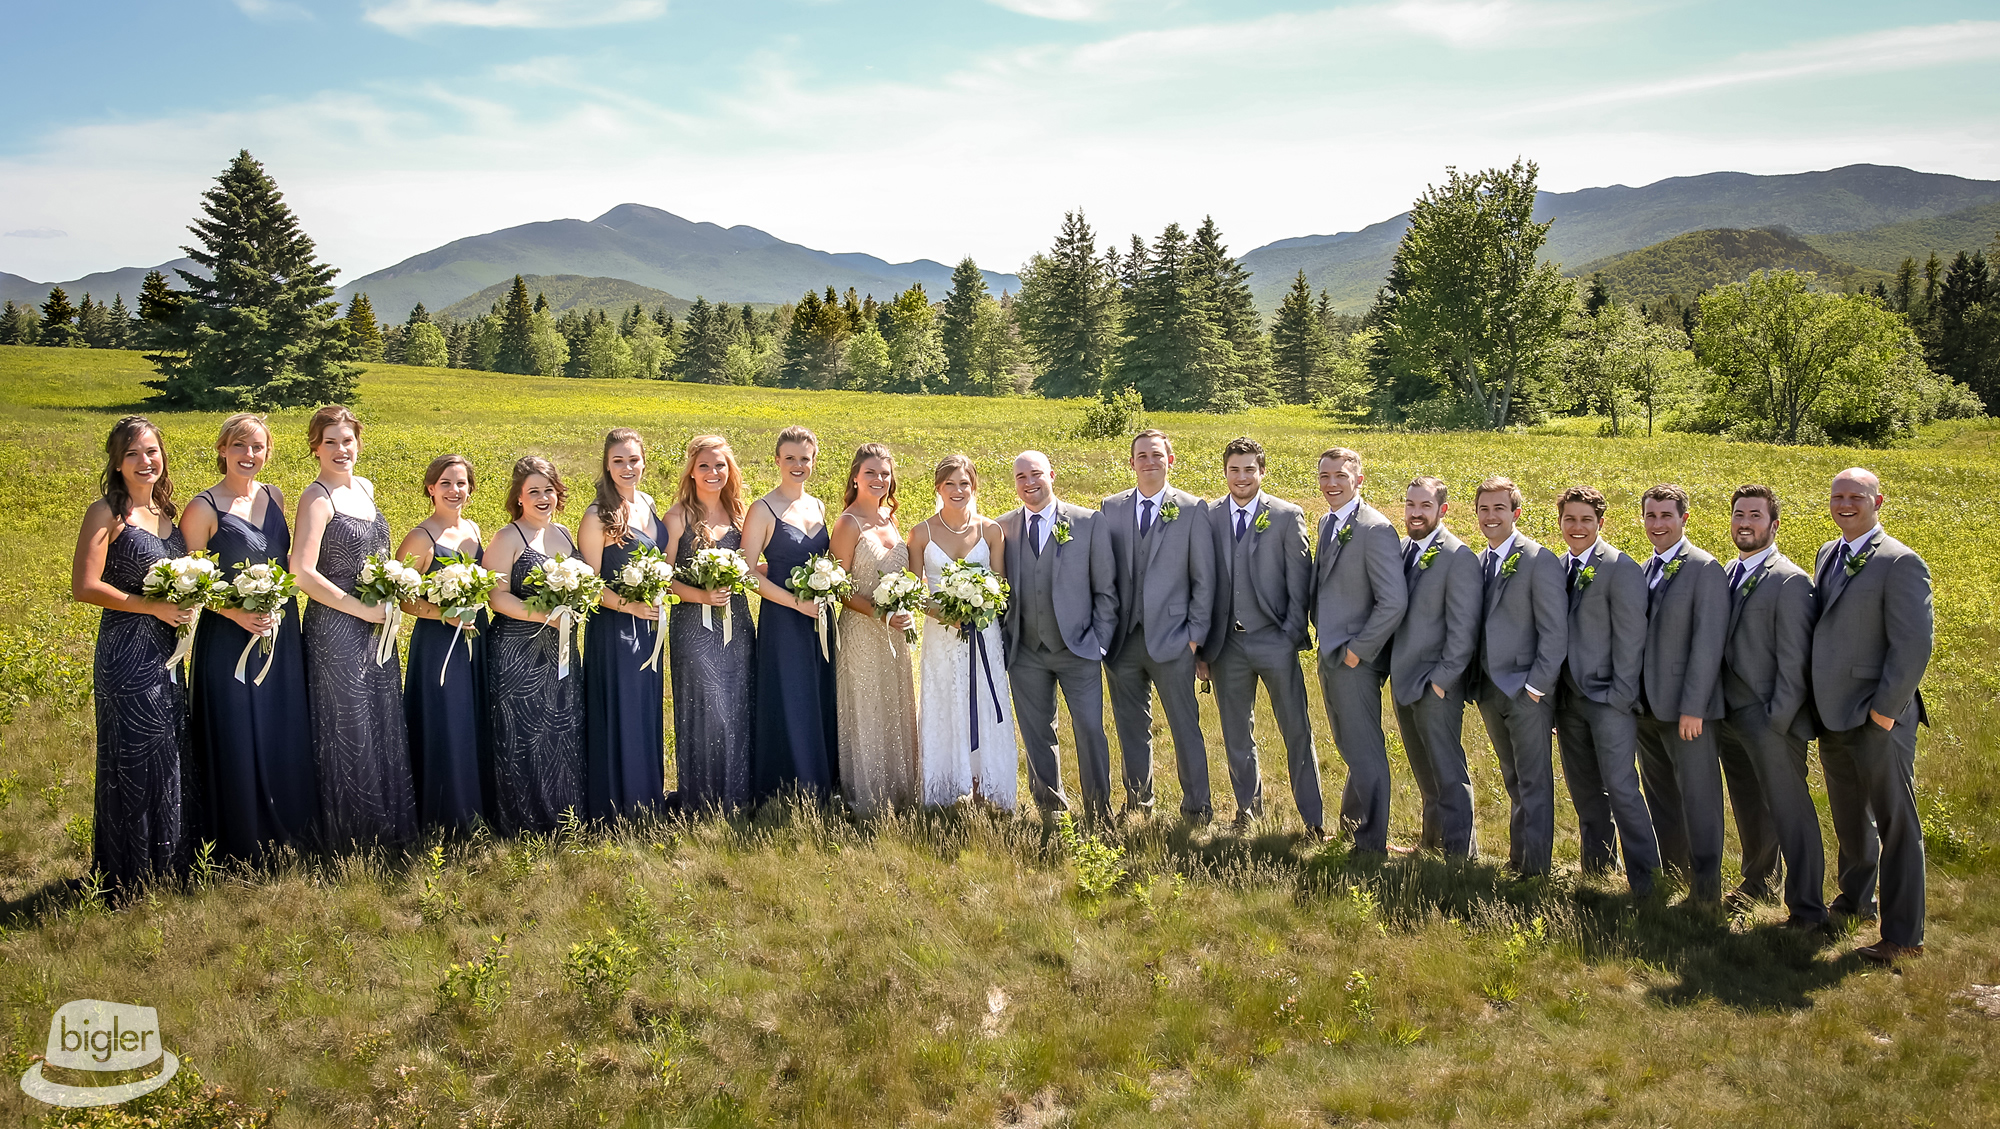 20180616_-_18_-_Lake_Placid_Wedding